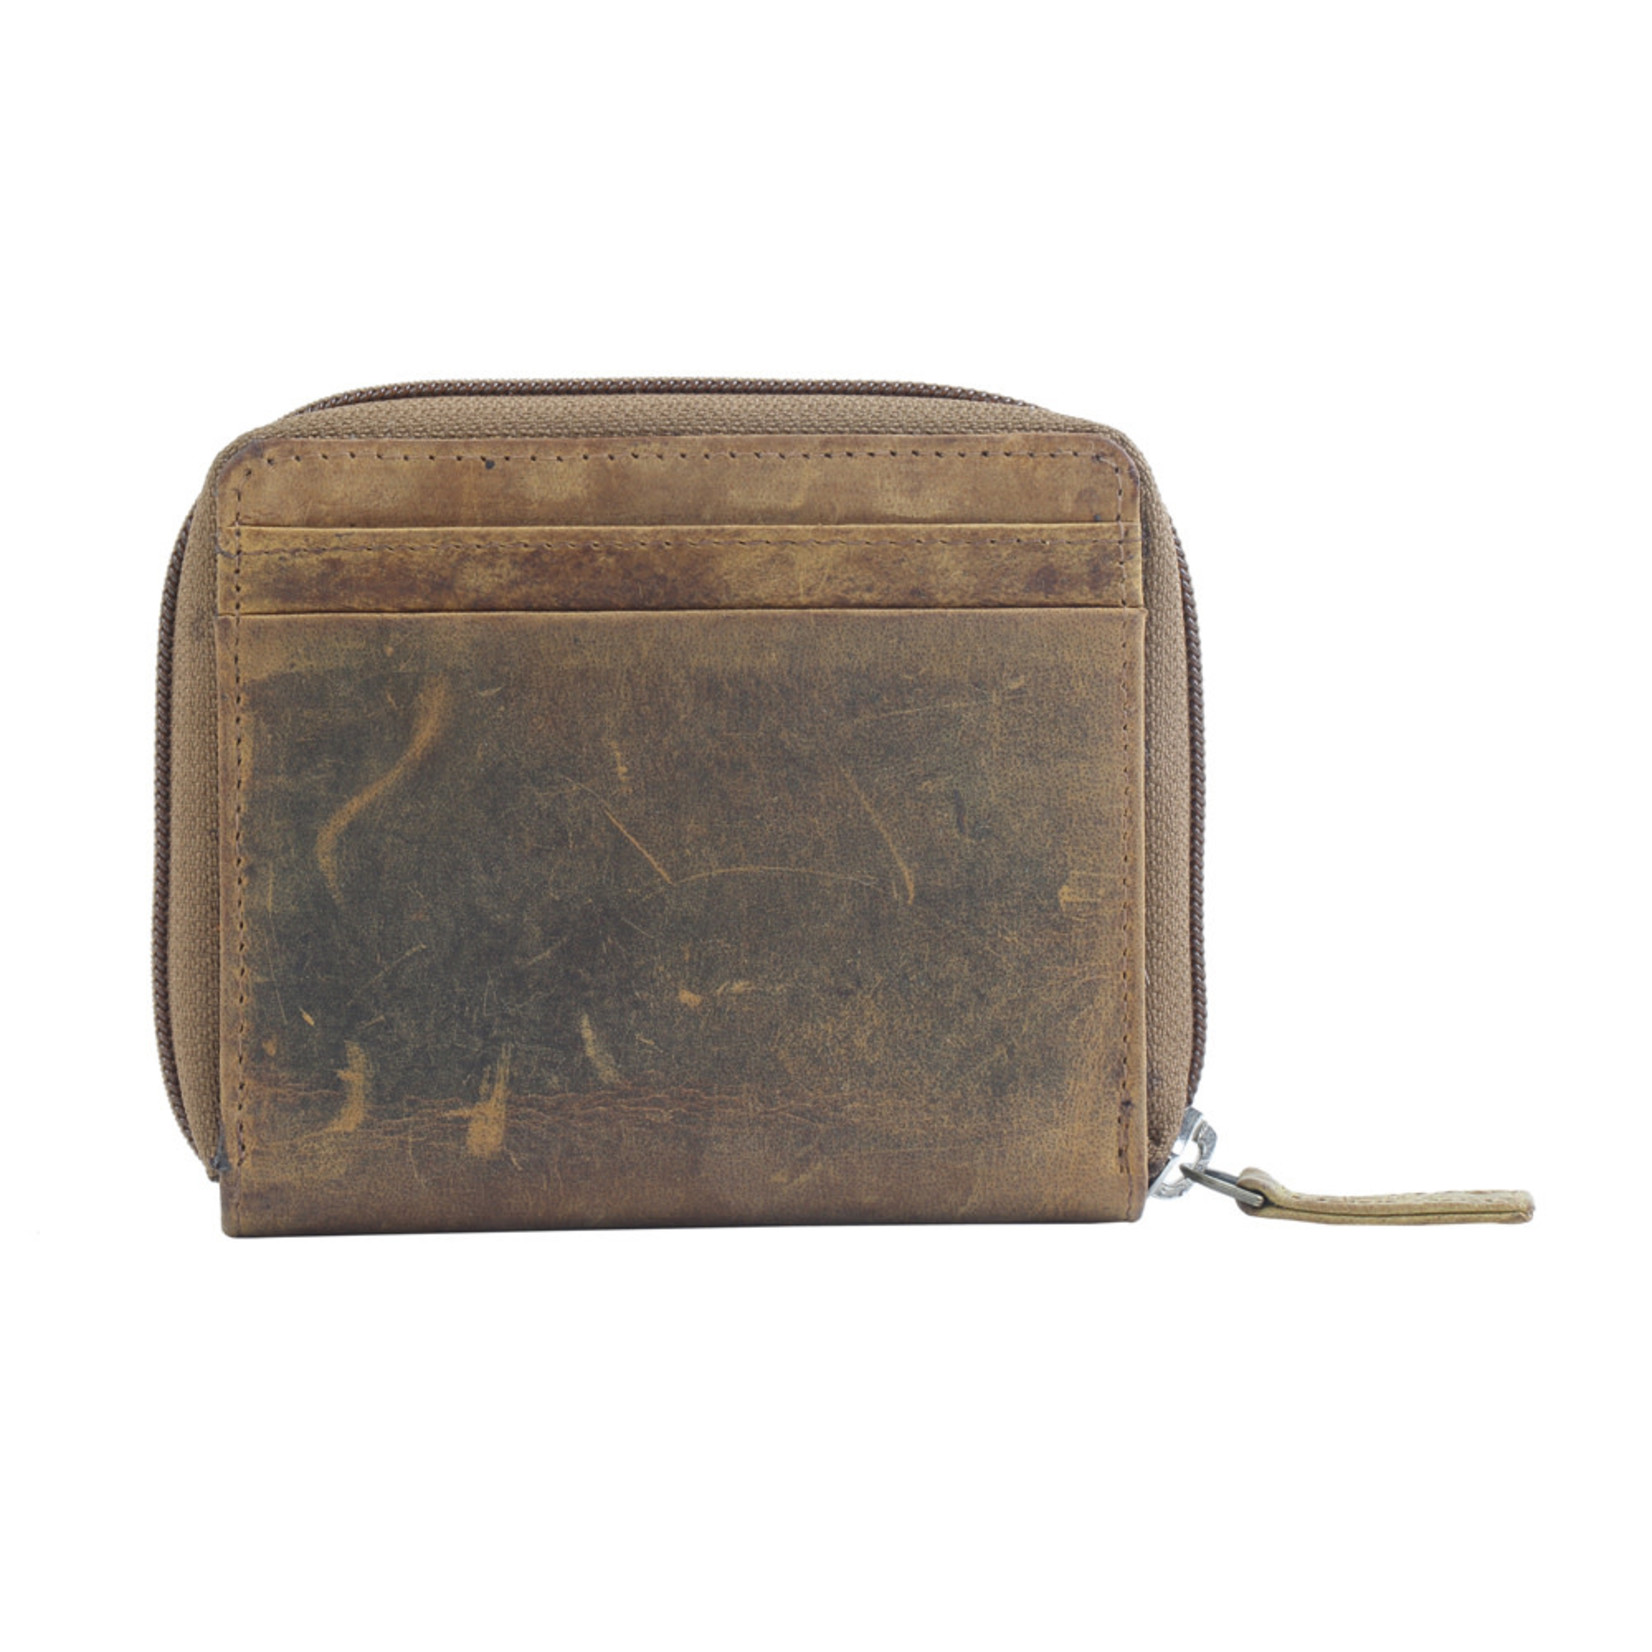 Myra Bags S-2668 Teen Crush Leather Wallet